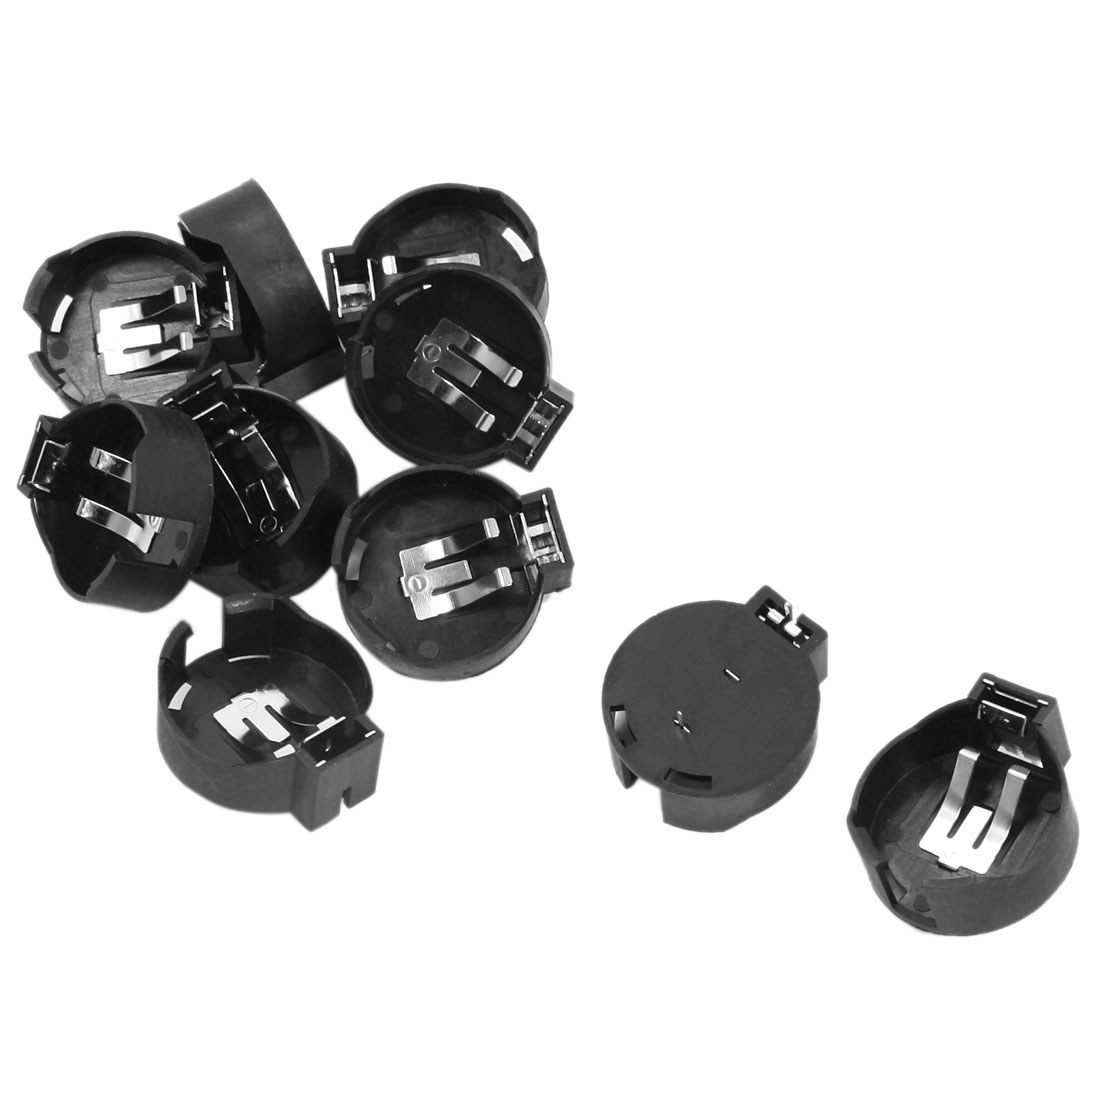 10 Pcs Black Plastic Shell Lithium Coin Cell Button Battery Holder Socket for CR2477